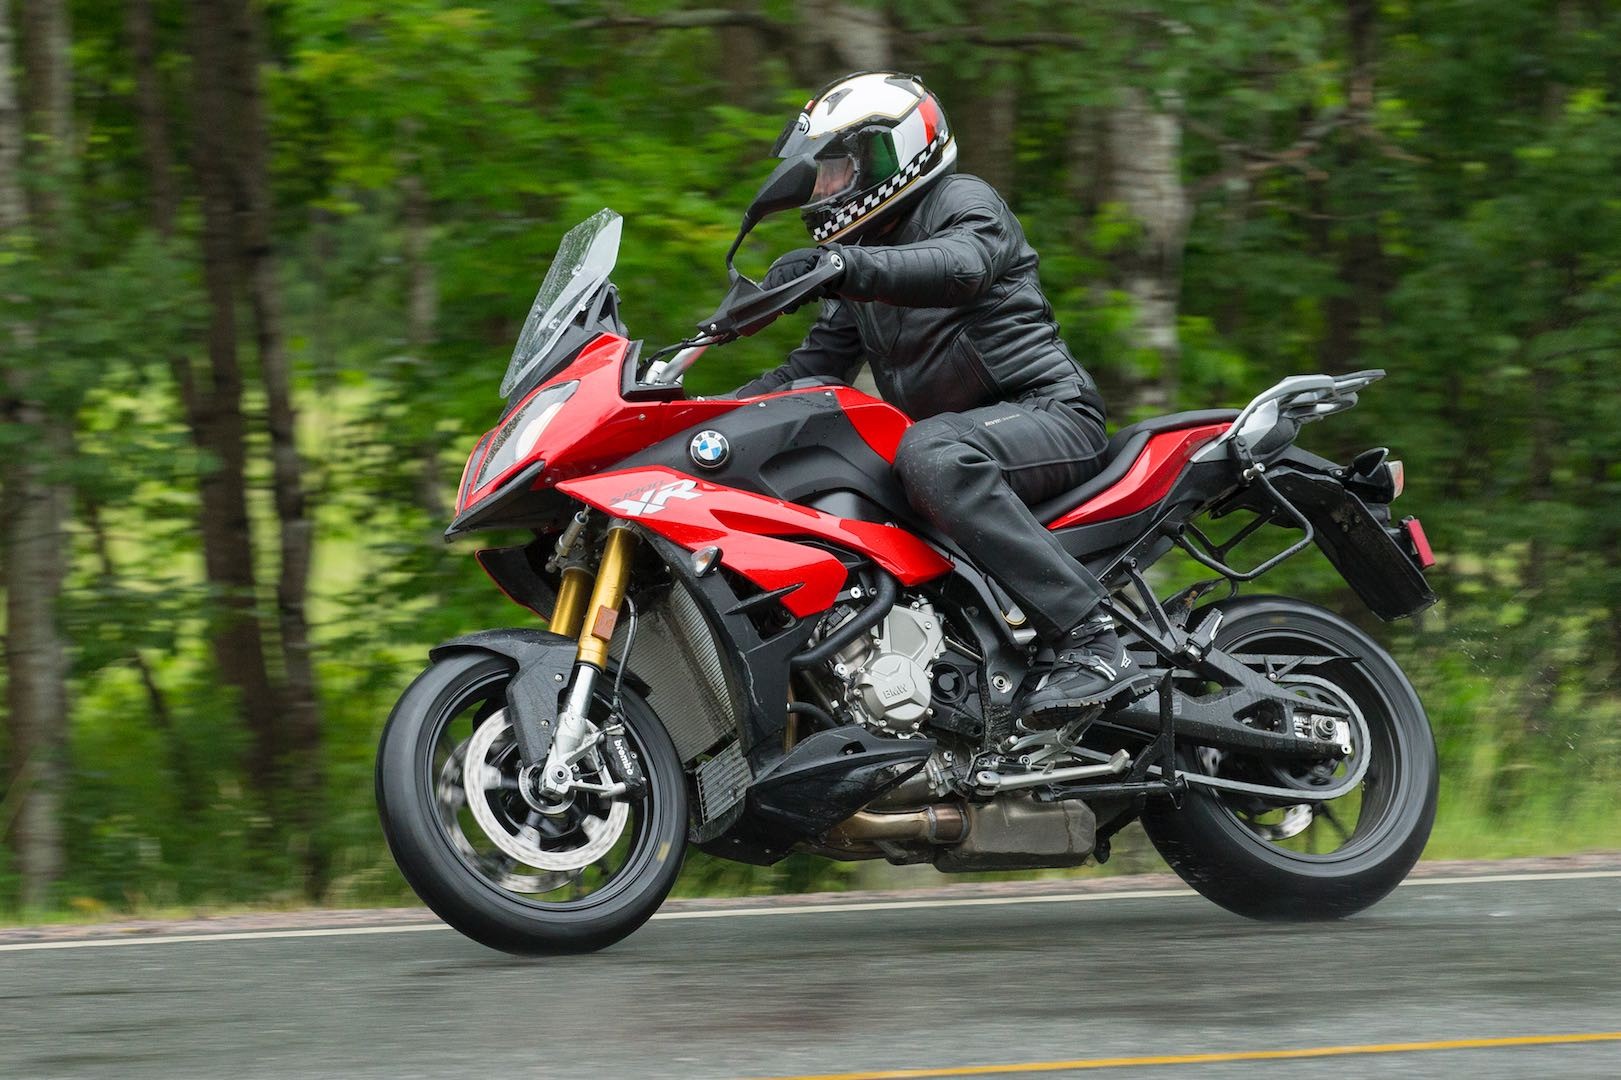 Riding Motorcycles in the Rain | 8 Essential Techniques